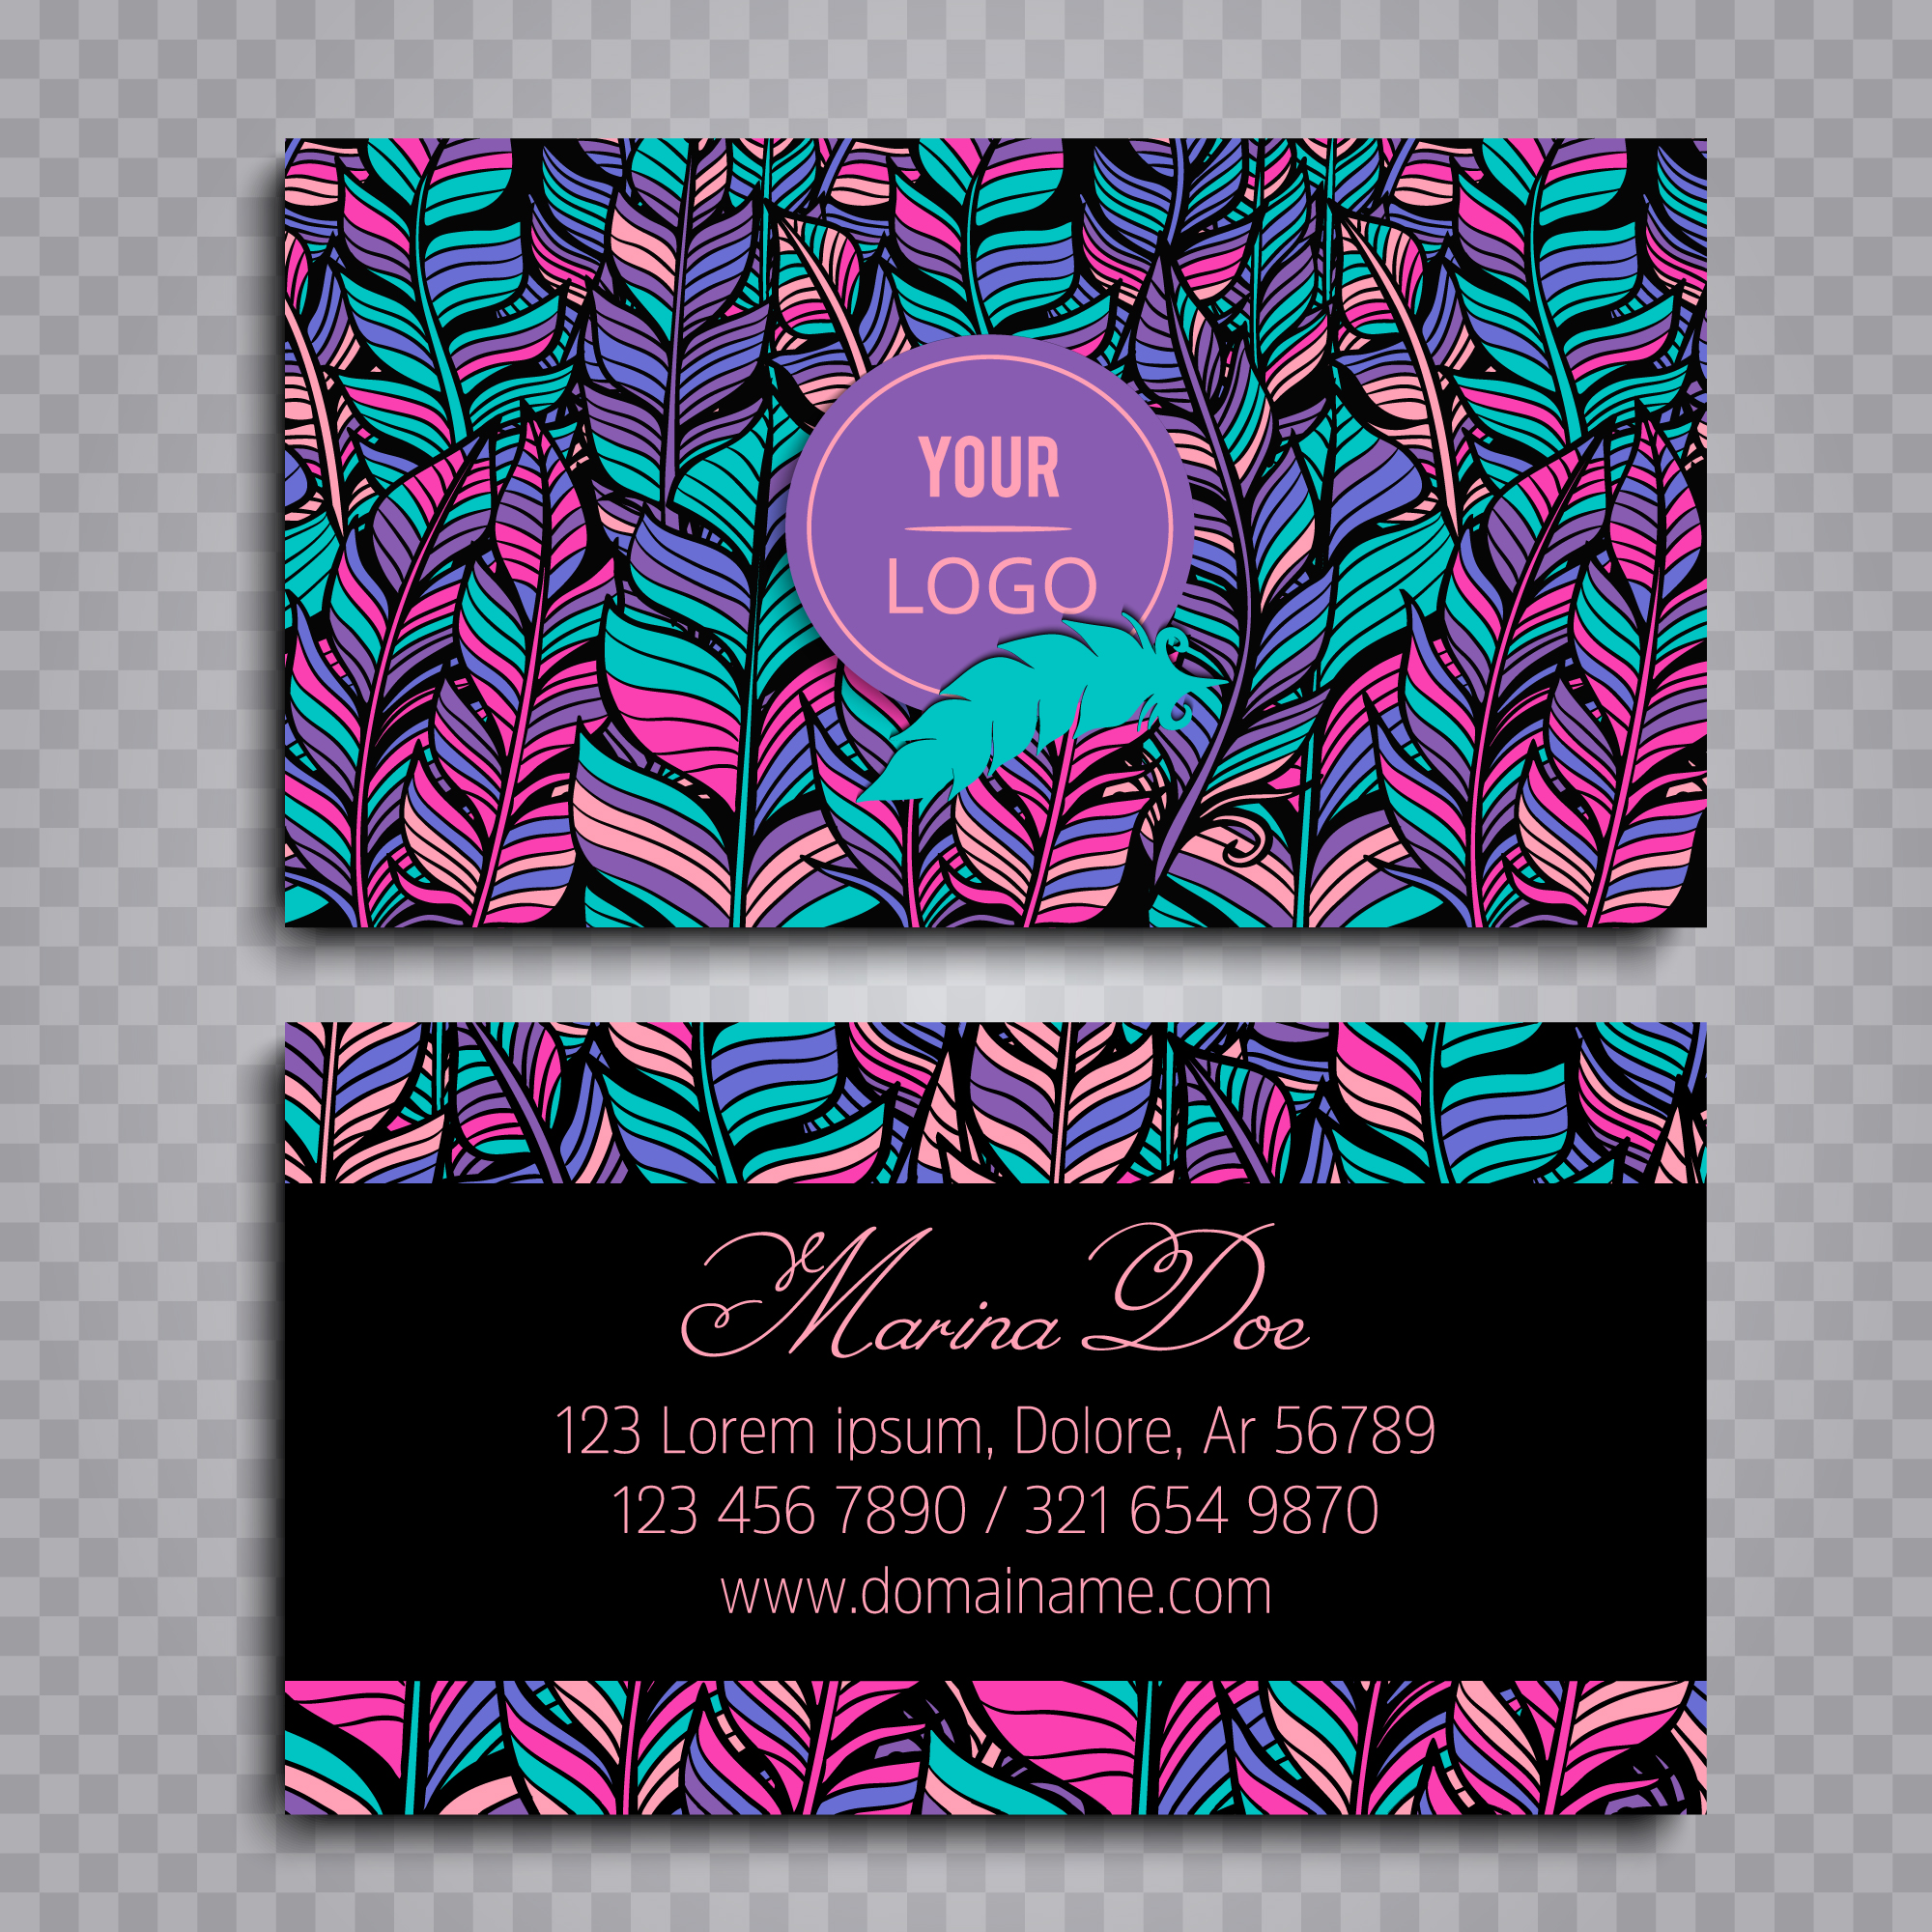 Boho style business card